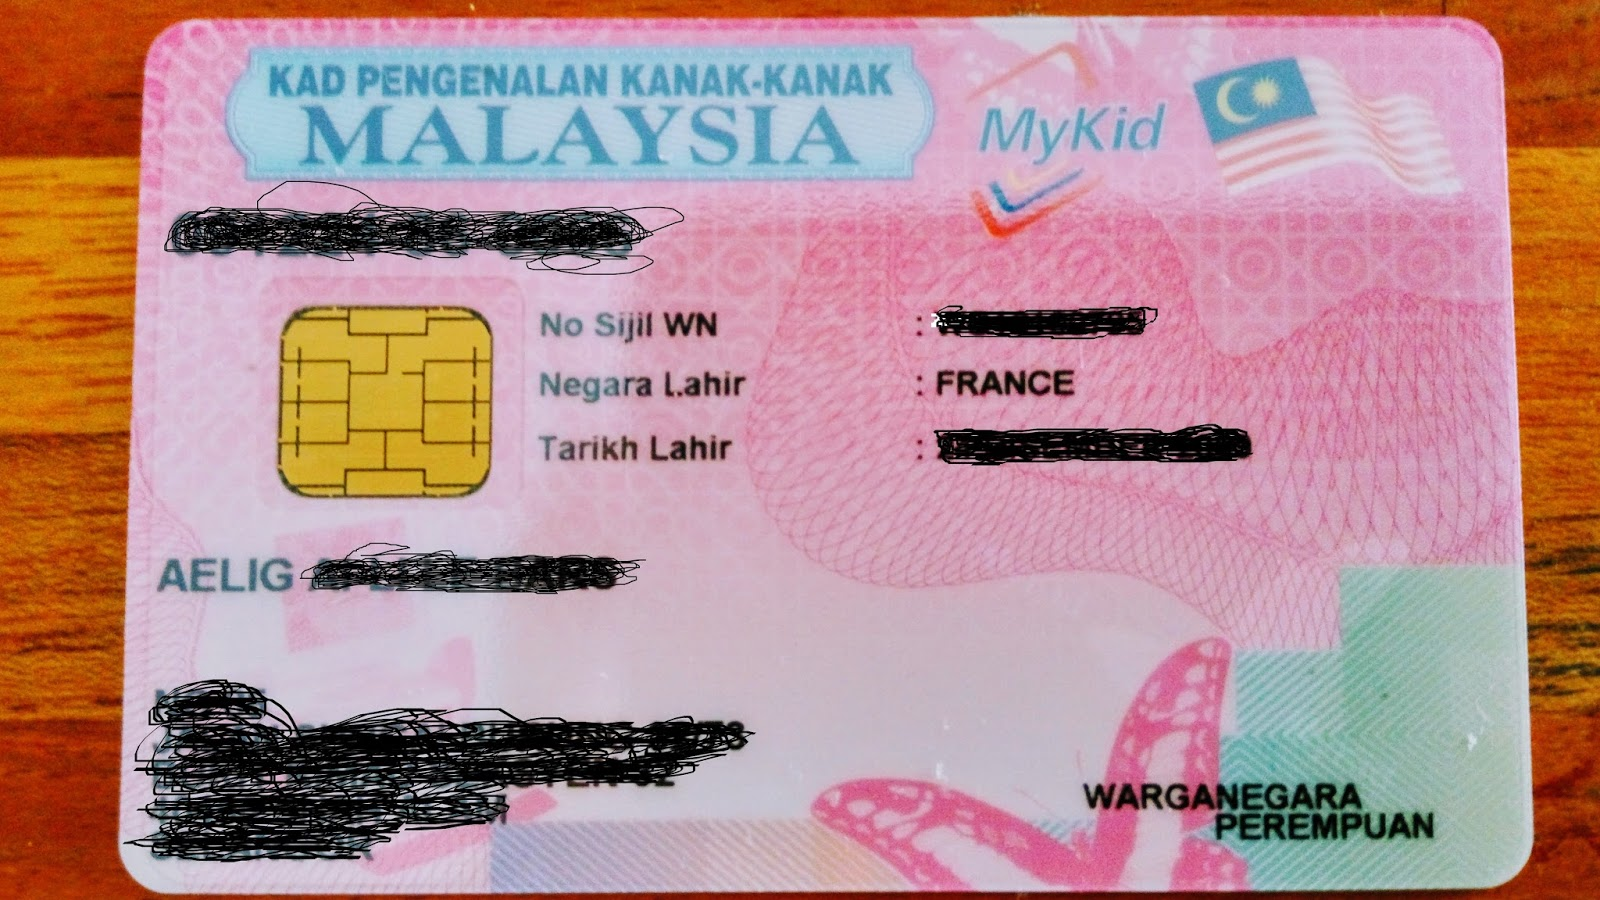 A Malaysian In France Applying The Malaysian Citizenship For Child